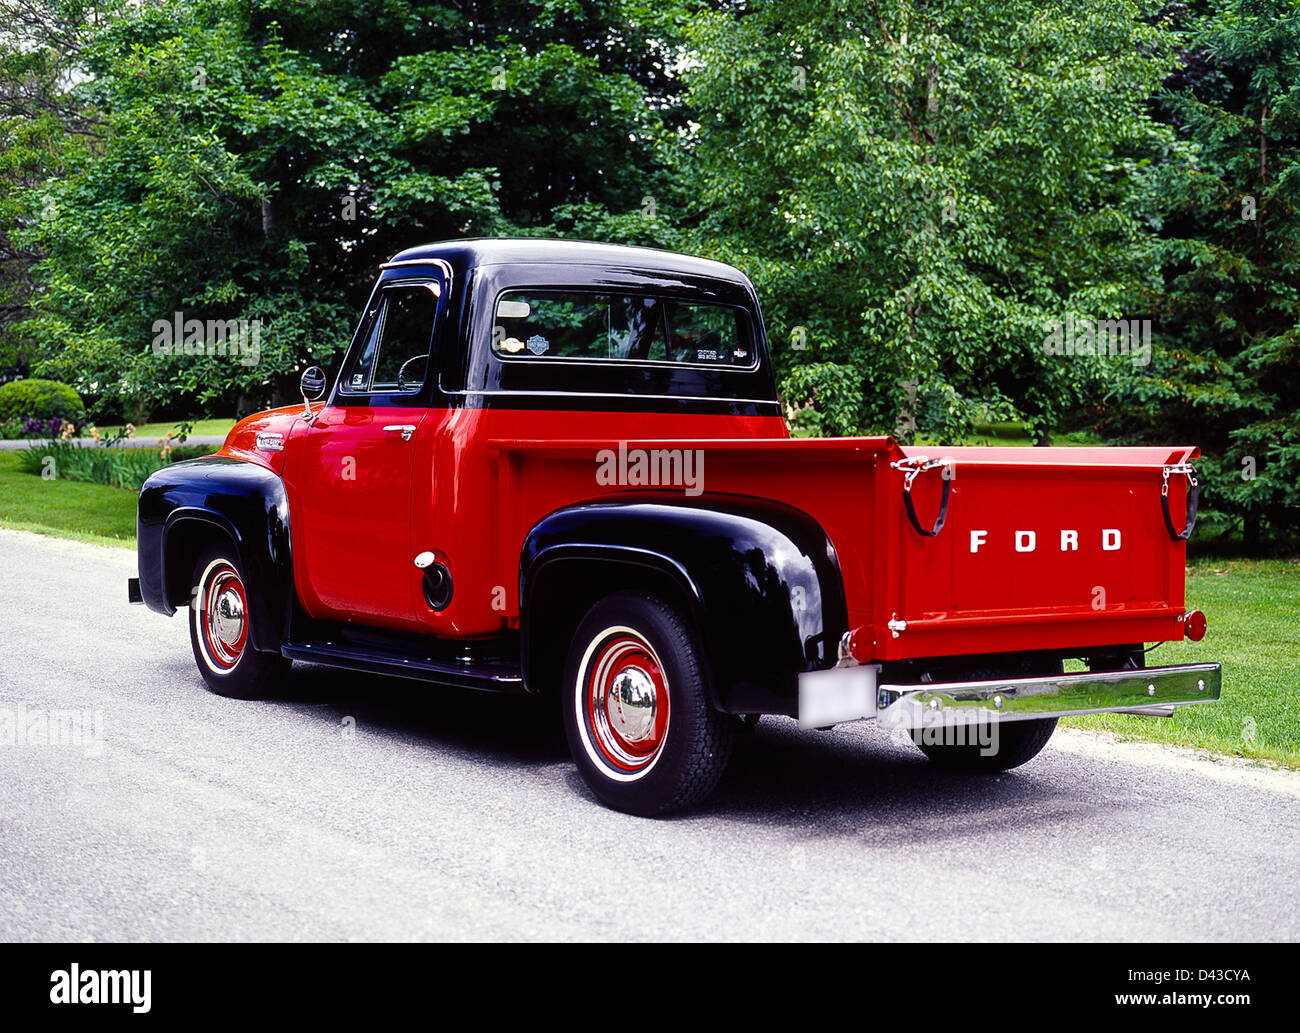 1953 ford f 100 pick up truck stock photo 54165758 alamy. Black Bedroom Furniture Sets. Home Design Ideas